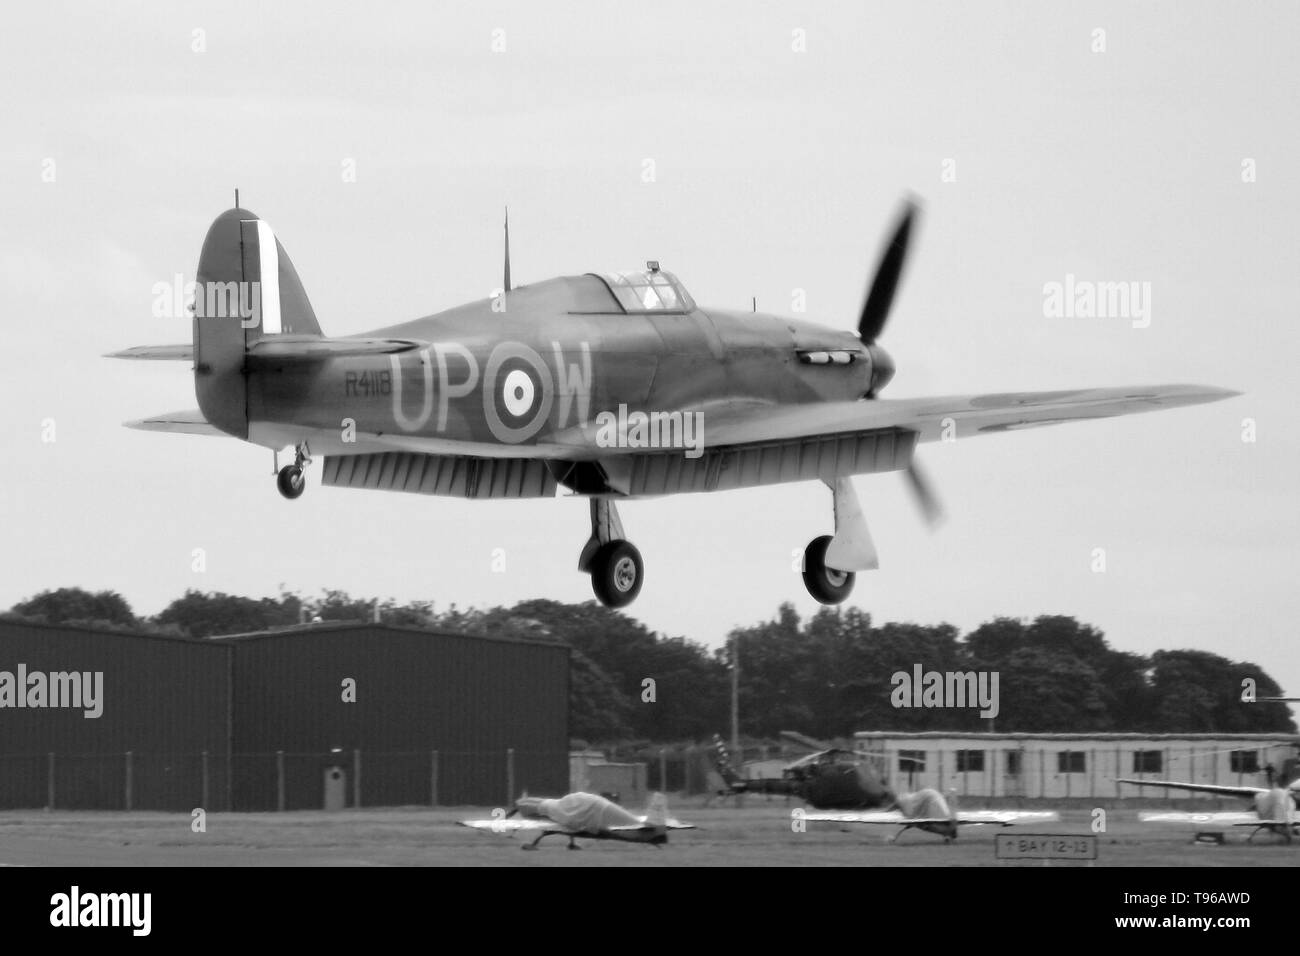 Hawker Hurricane, Battle of Britain fighter aircraft - Stock Image